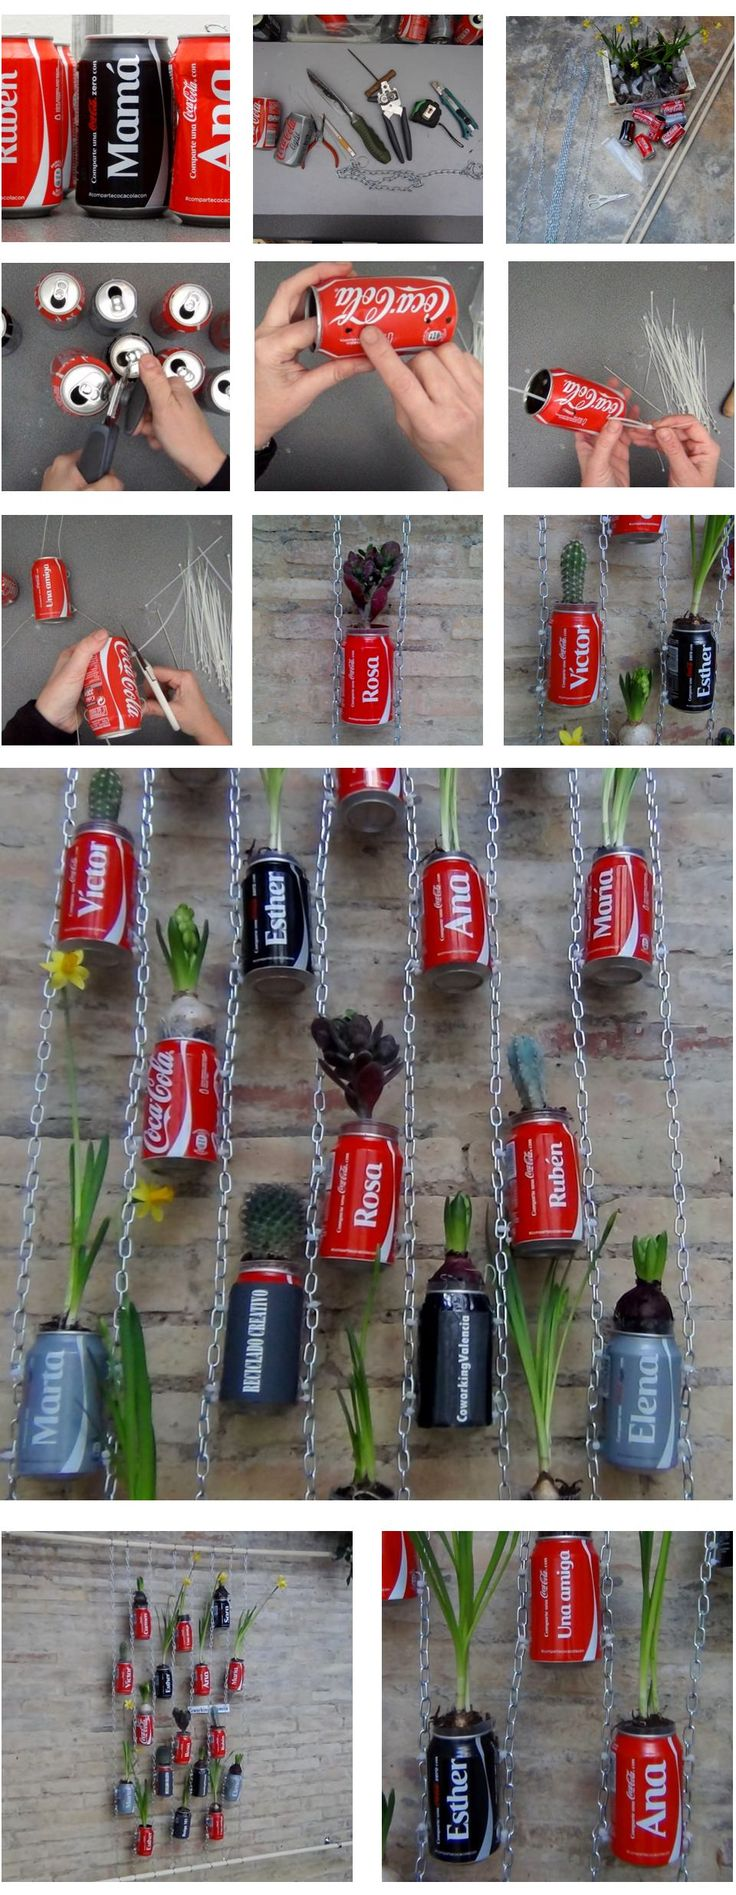 """Vertical garden made with recycled Coca Cola Cans! http://youtu.be/y2vtEBjvE50 [symple_toggle title=""""More Information"""" state=""""closed""""] Website: Reciclado Creativo - The Reuse Factory ! Submitted by: Rosa Montesa ! [/symple_toggle]"""